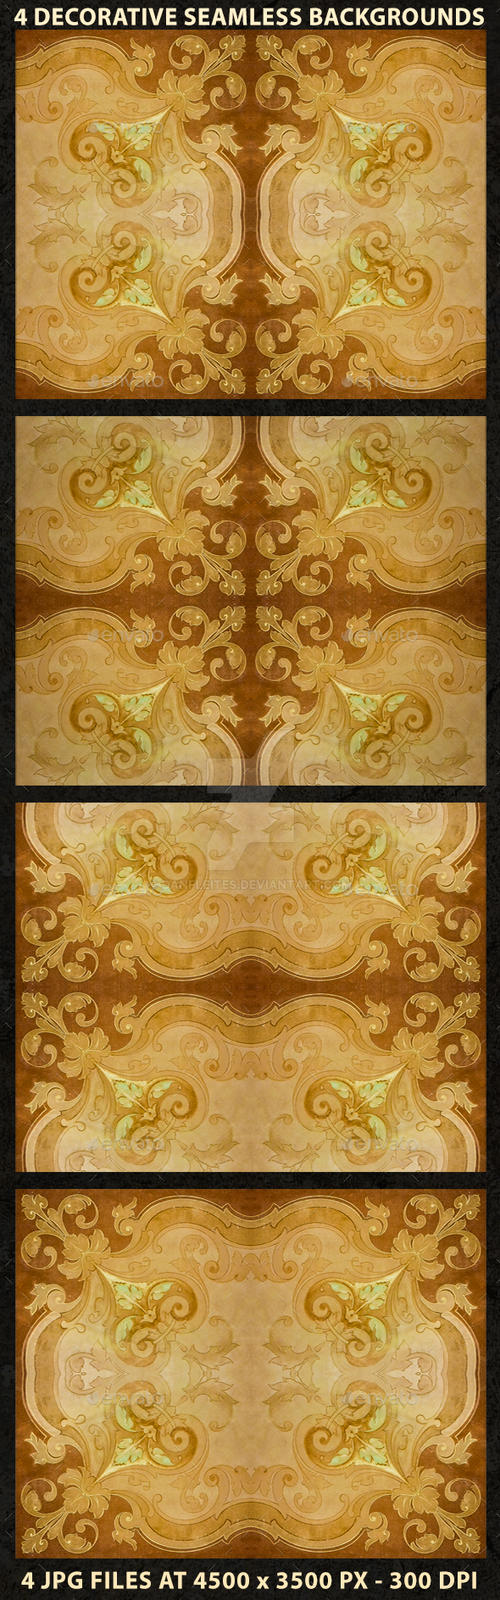 4 Ornate Decorative Seamlesss Backgrounds by danfleites